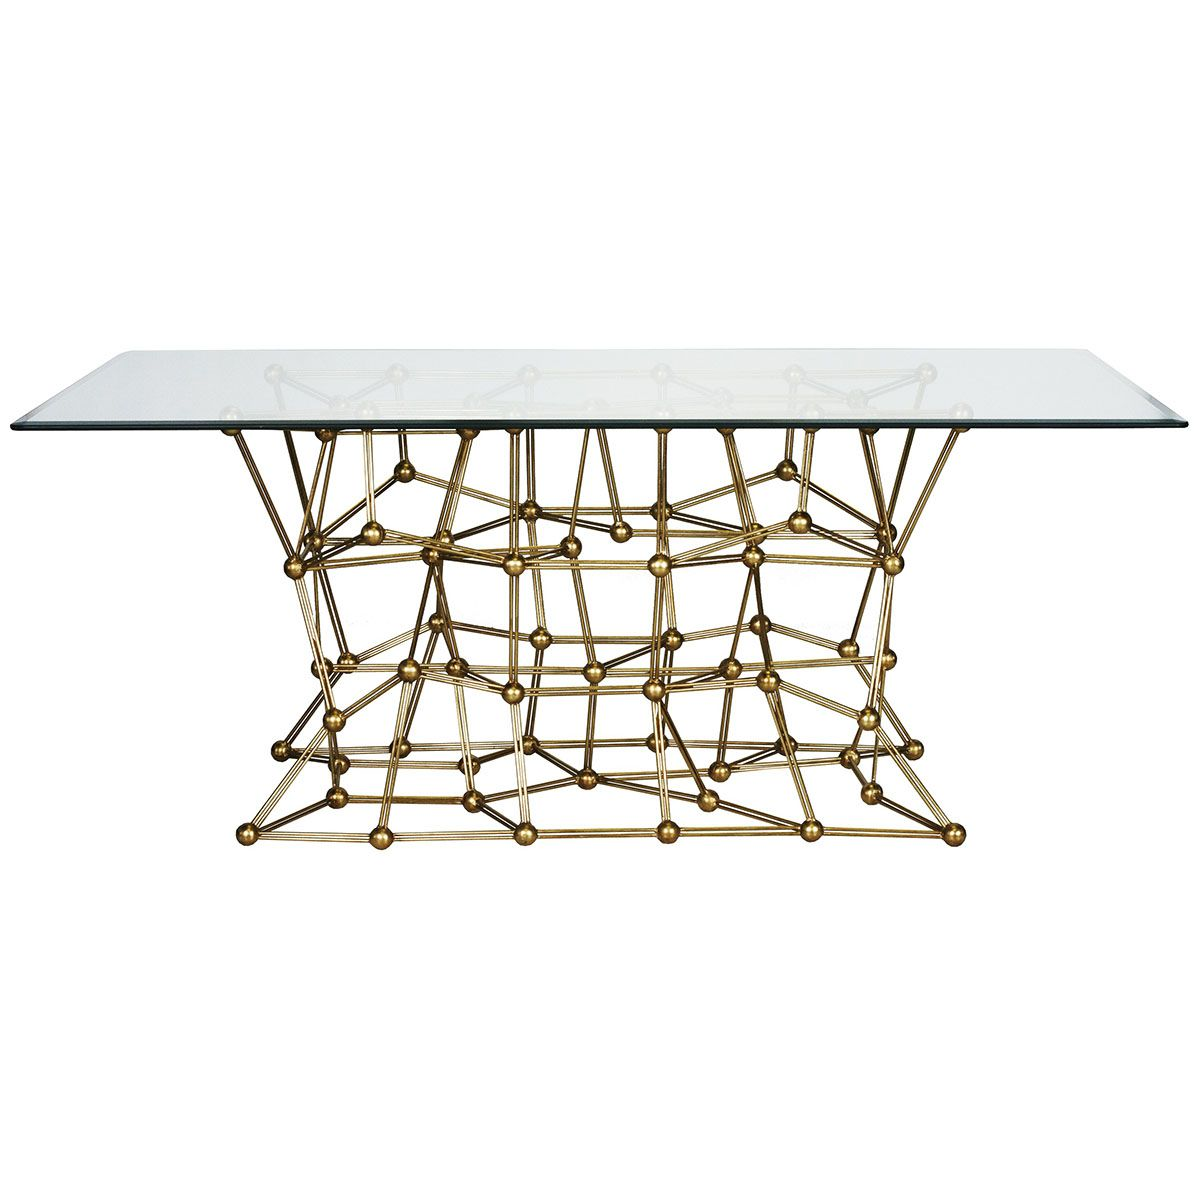 Worlds Away Gold Leaf Iron Dining Table With 42 X 72 Glass Top MOLECULE